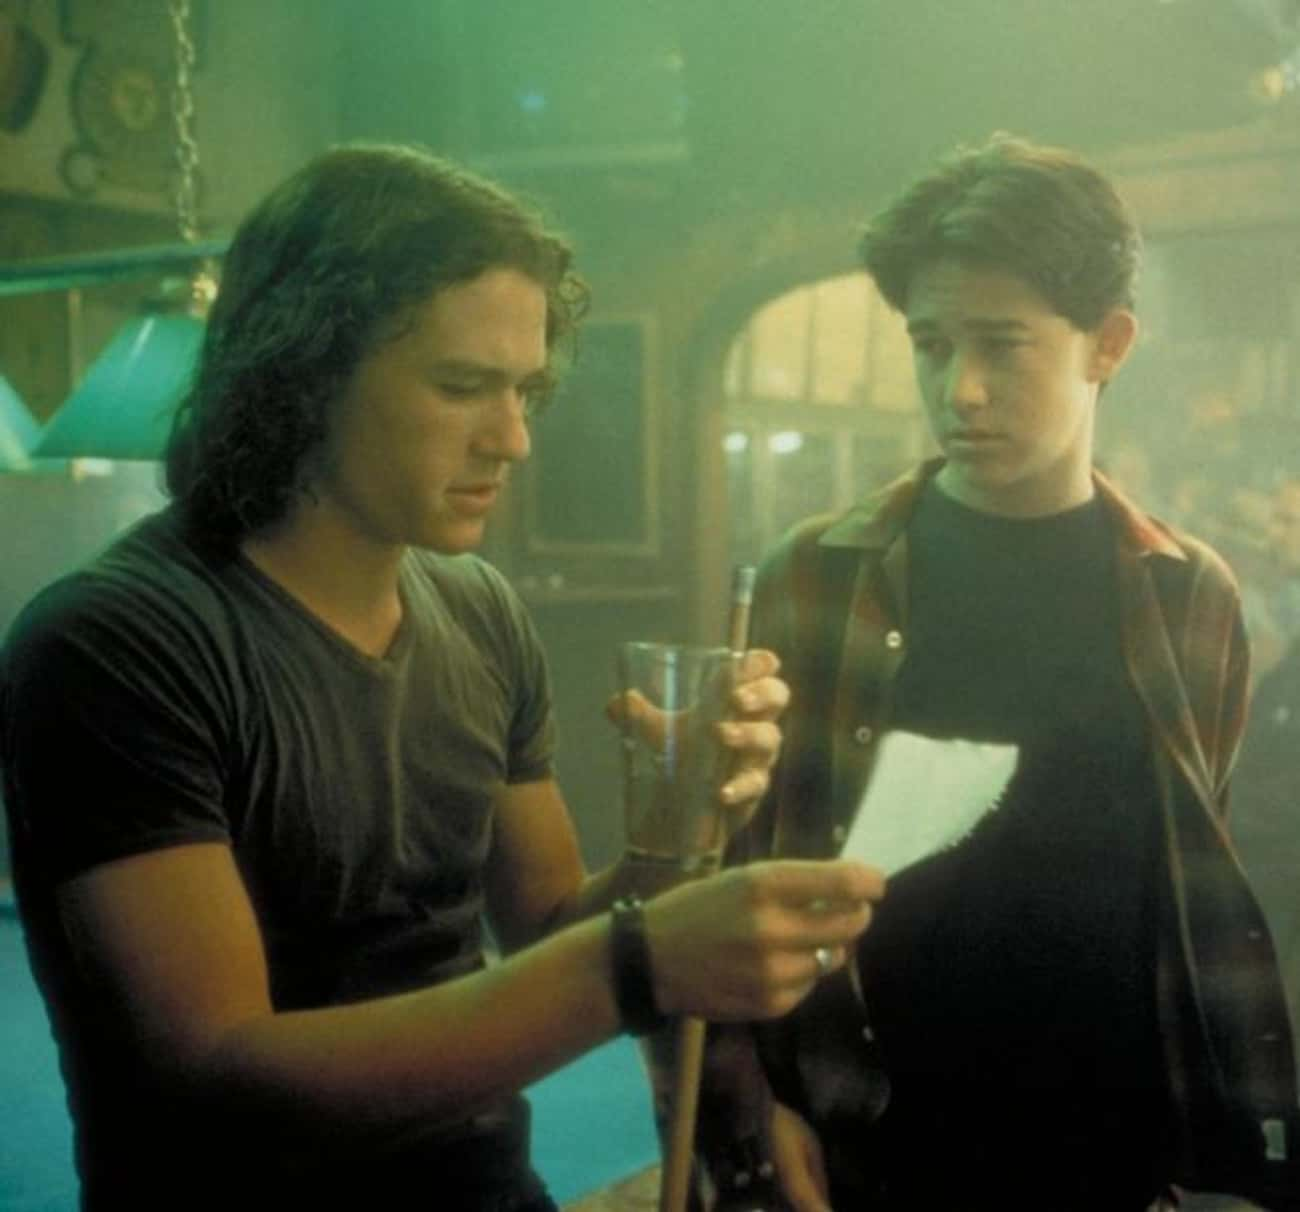 10 Things I Hate About You is listed (or ranked) 1 on the list Actors Who Starred Together Before They Were Superheroes